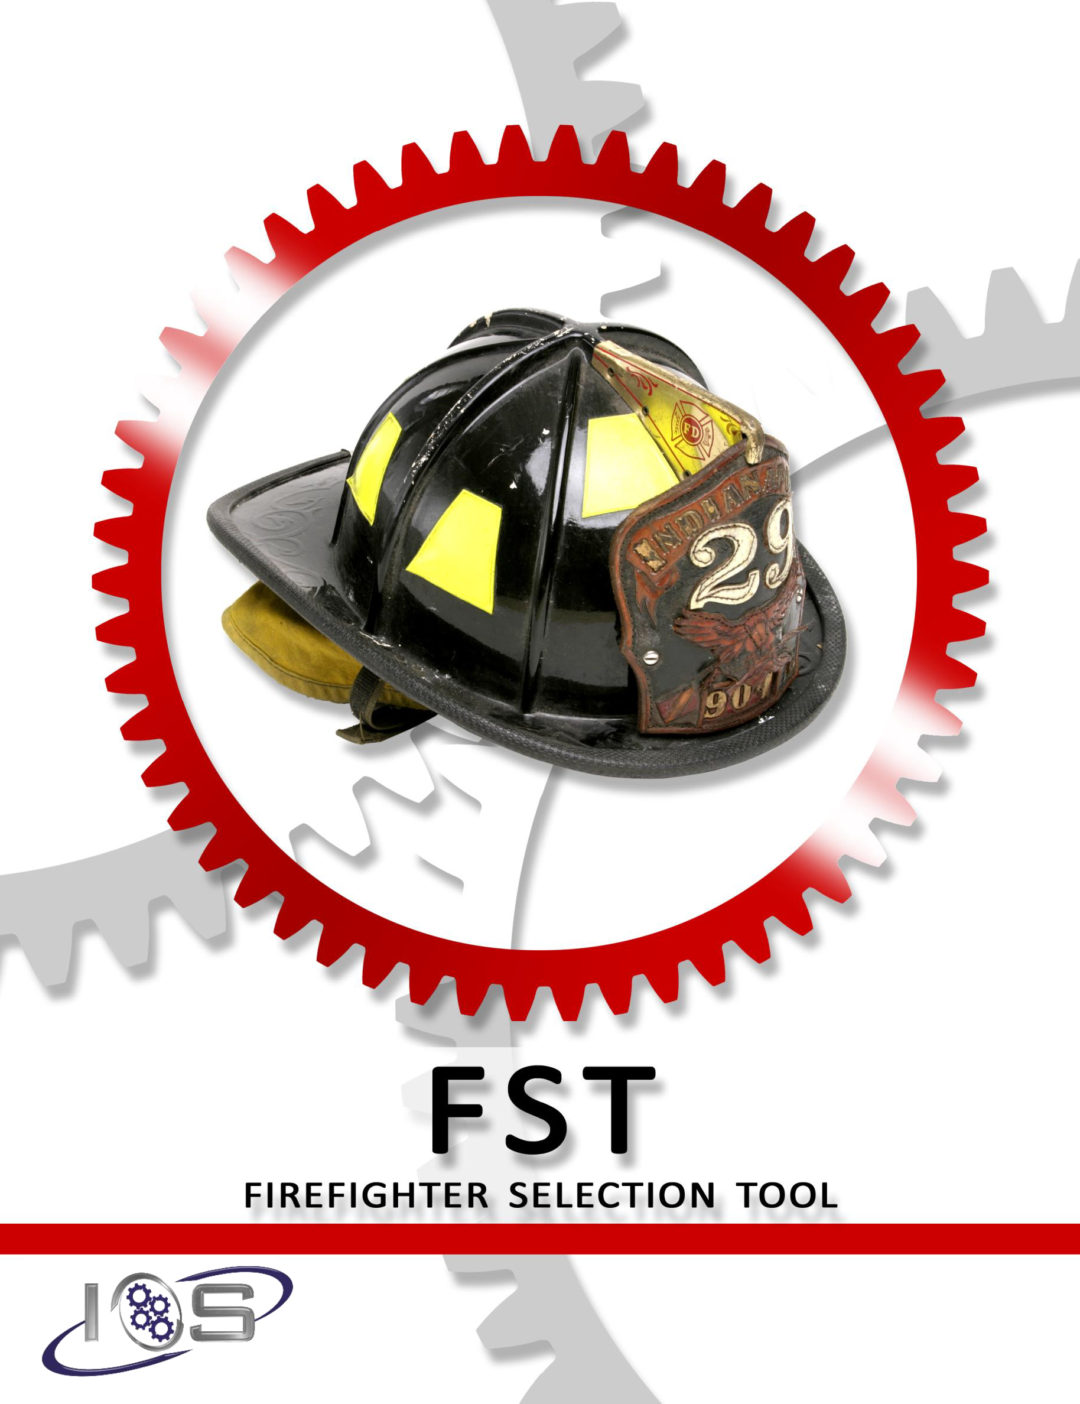 Firefighter Selection Tool - FST